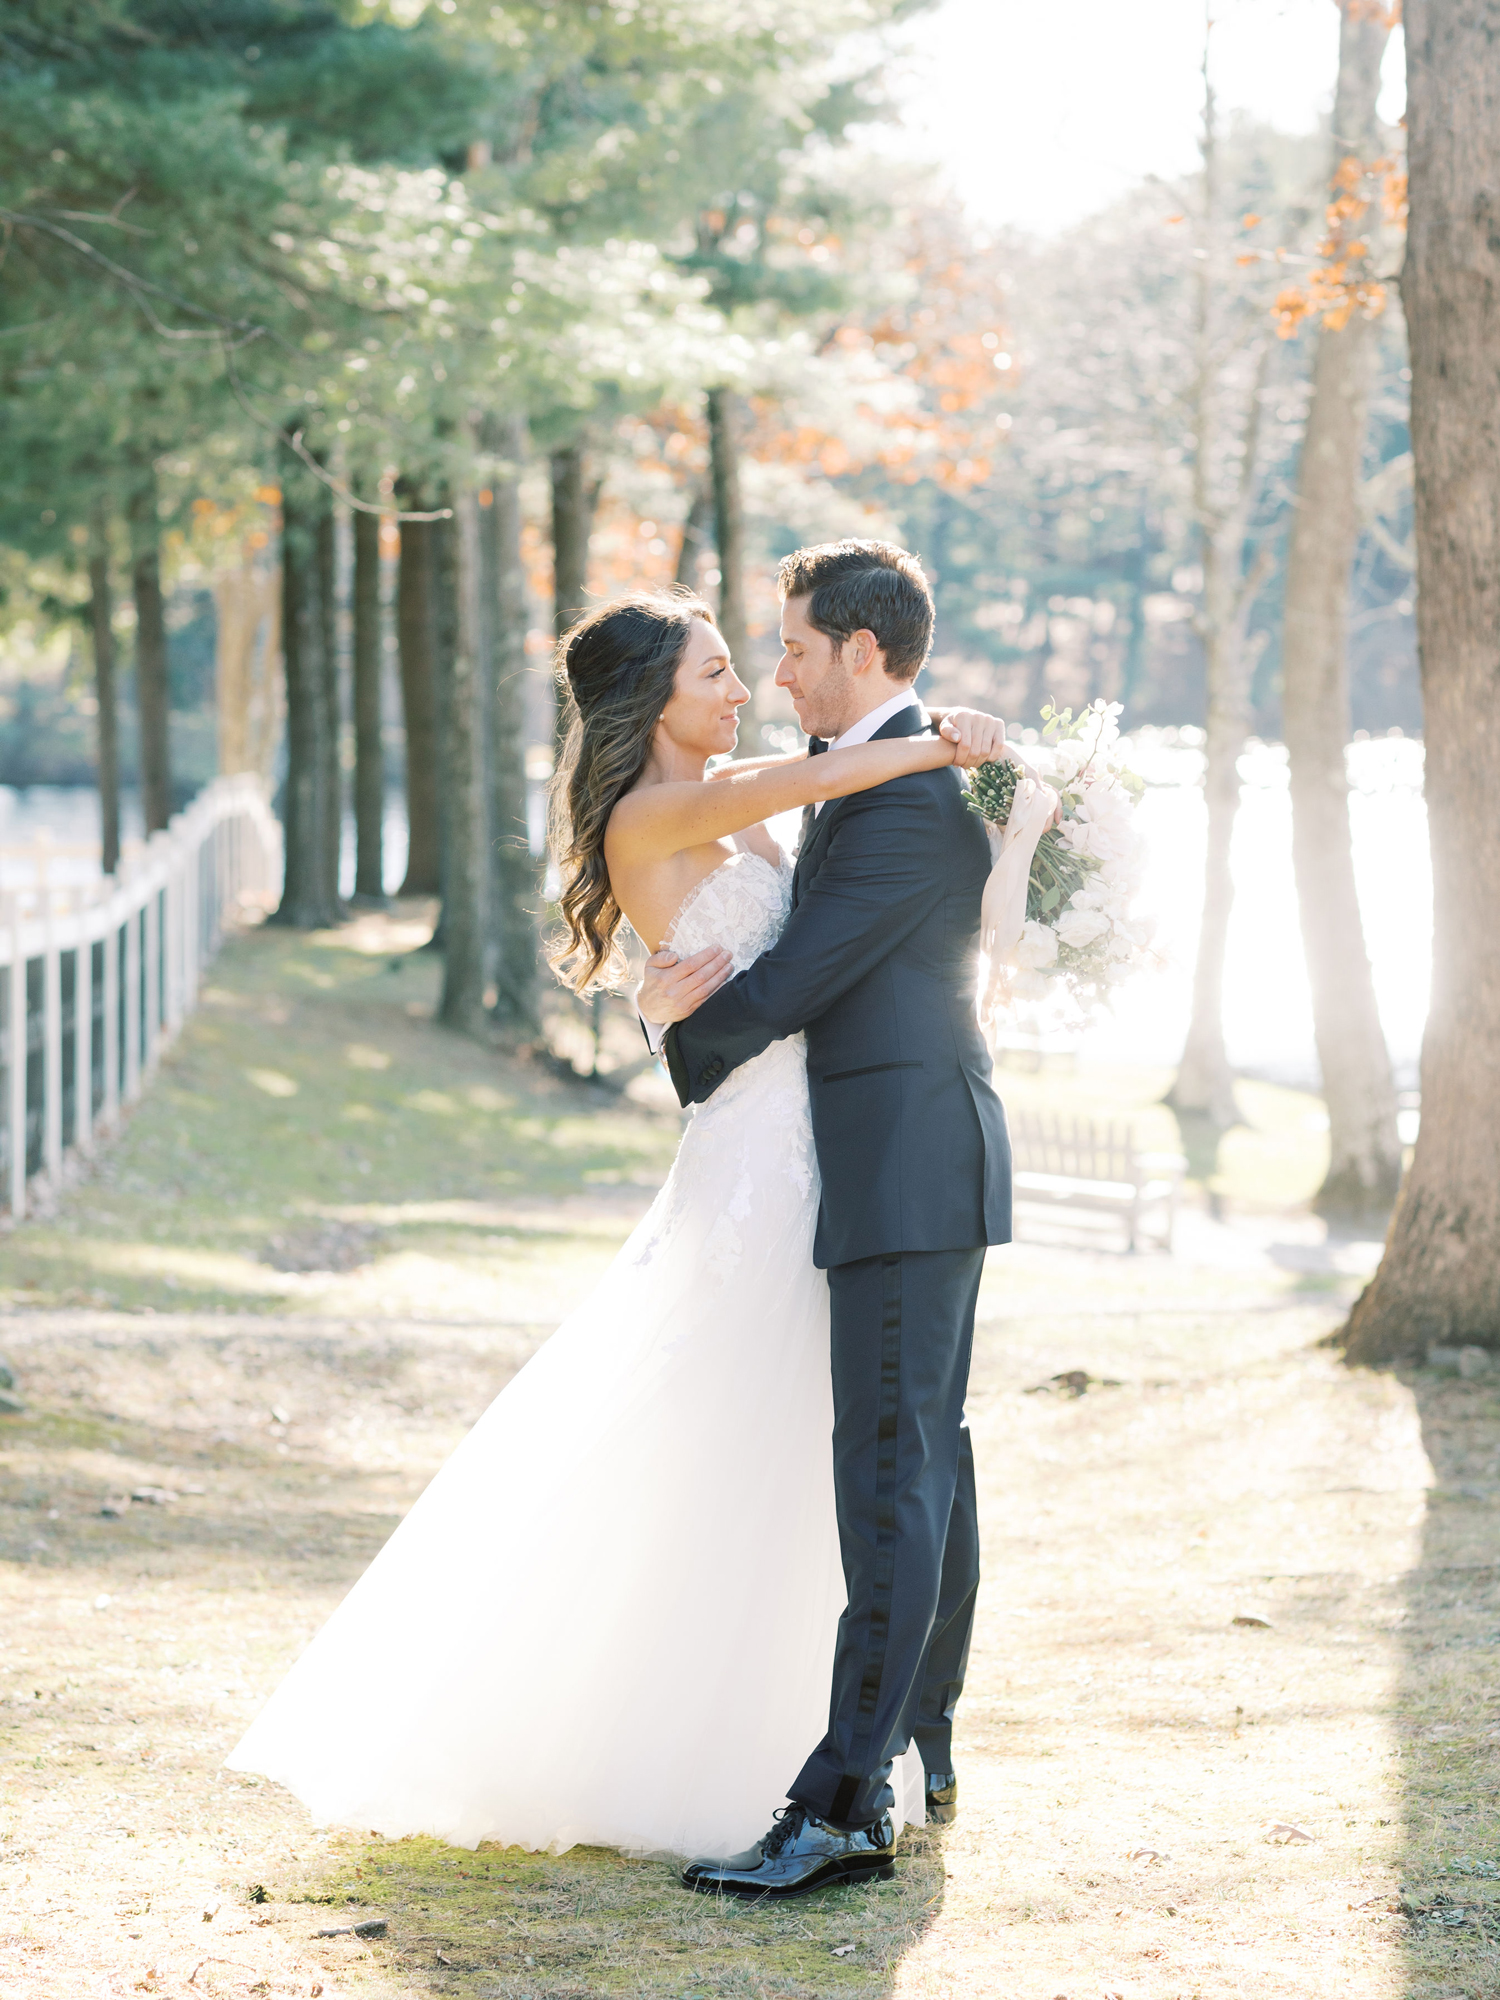 bride and groom hugging outside on grassy lawn near white fence